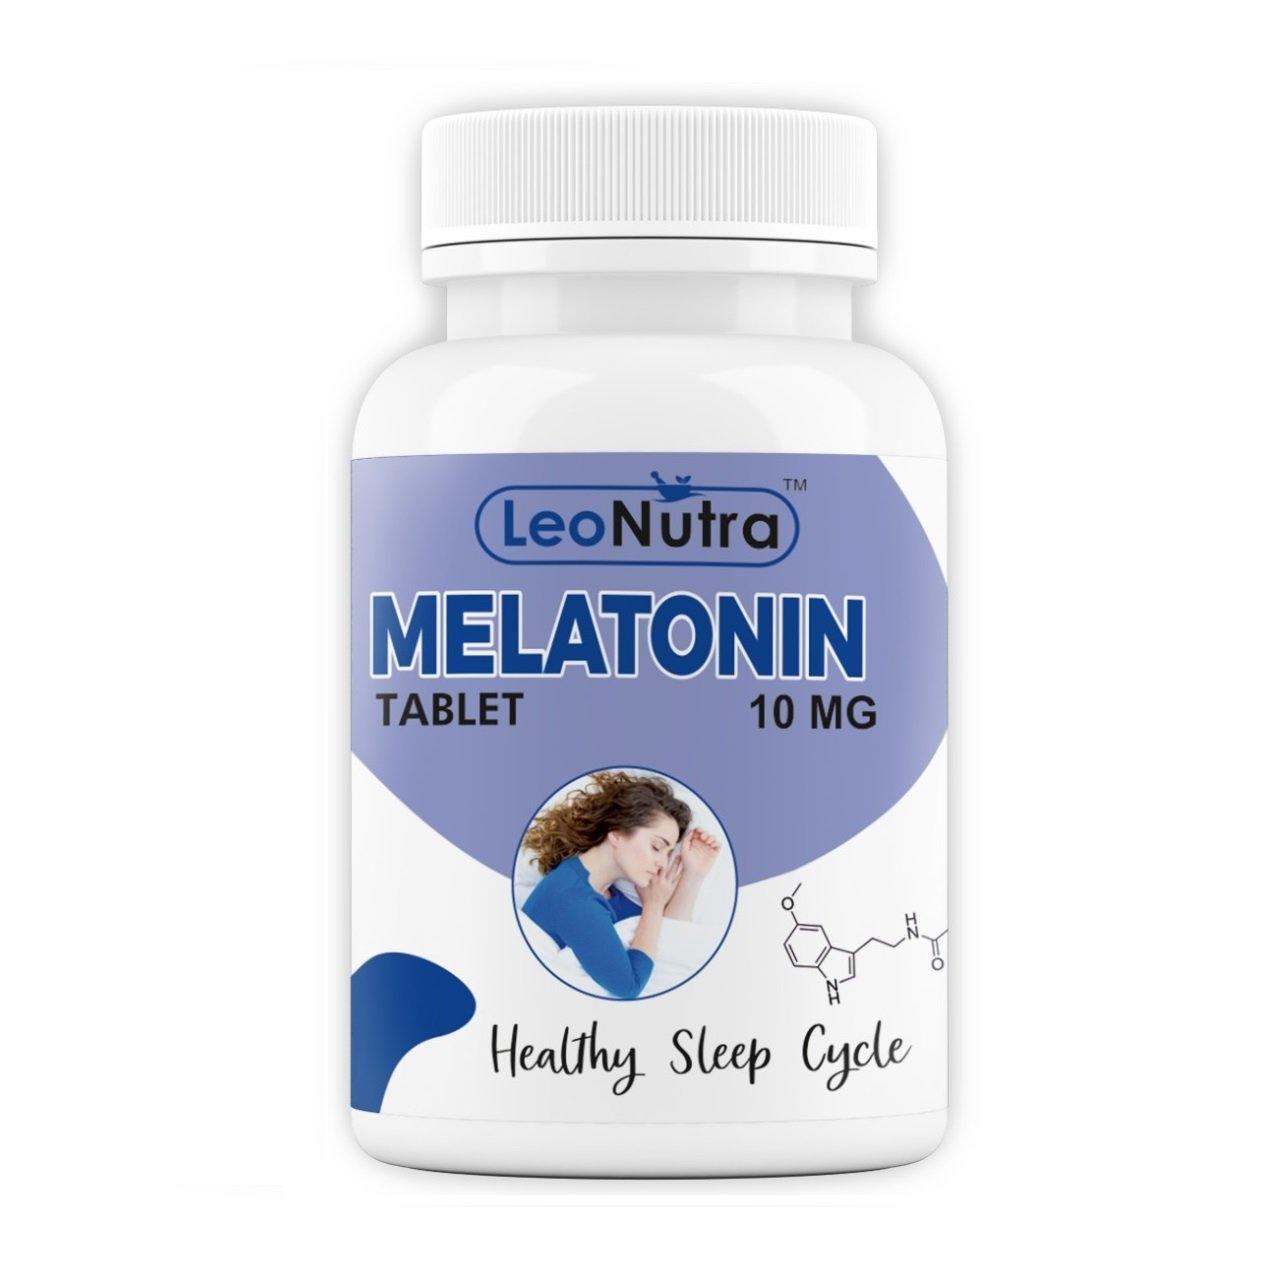 LeoNutra Melatonin 10 mg (Healthy Sleep Cycle) - 90 Tablets (90) | Stress & Anxiety Relief